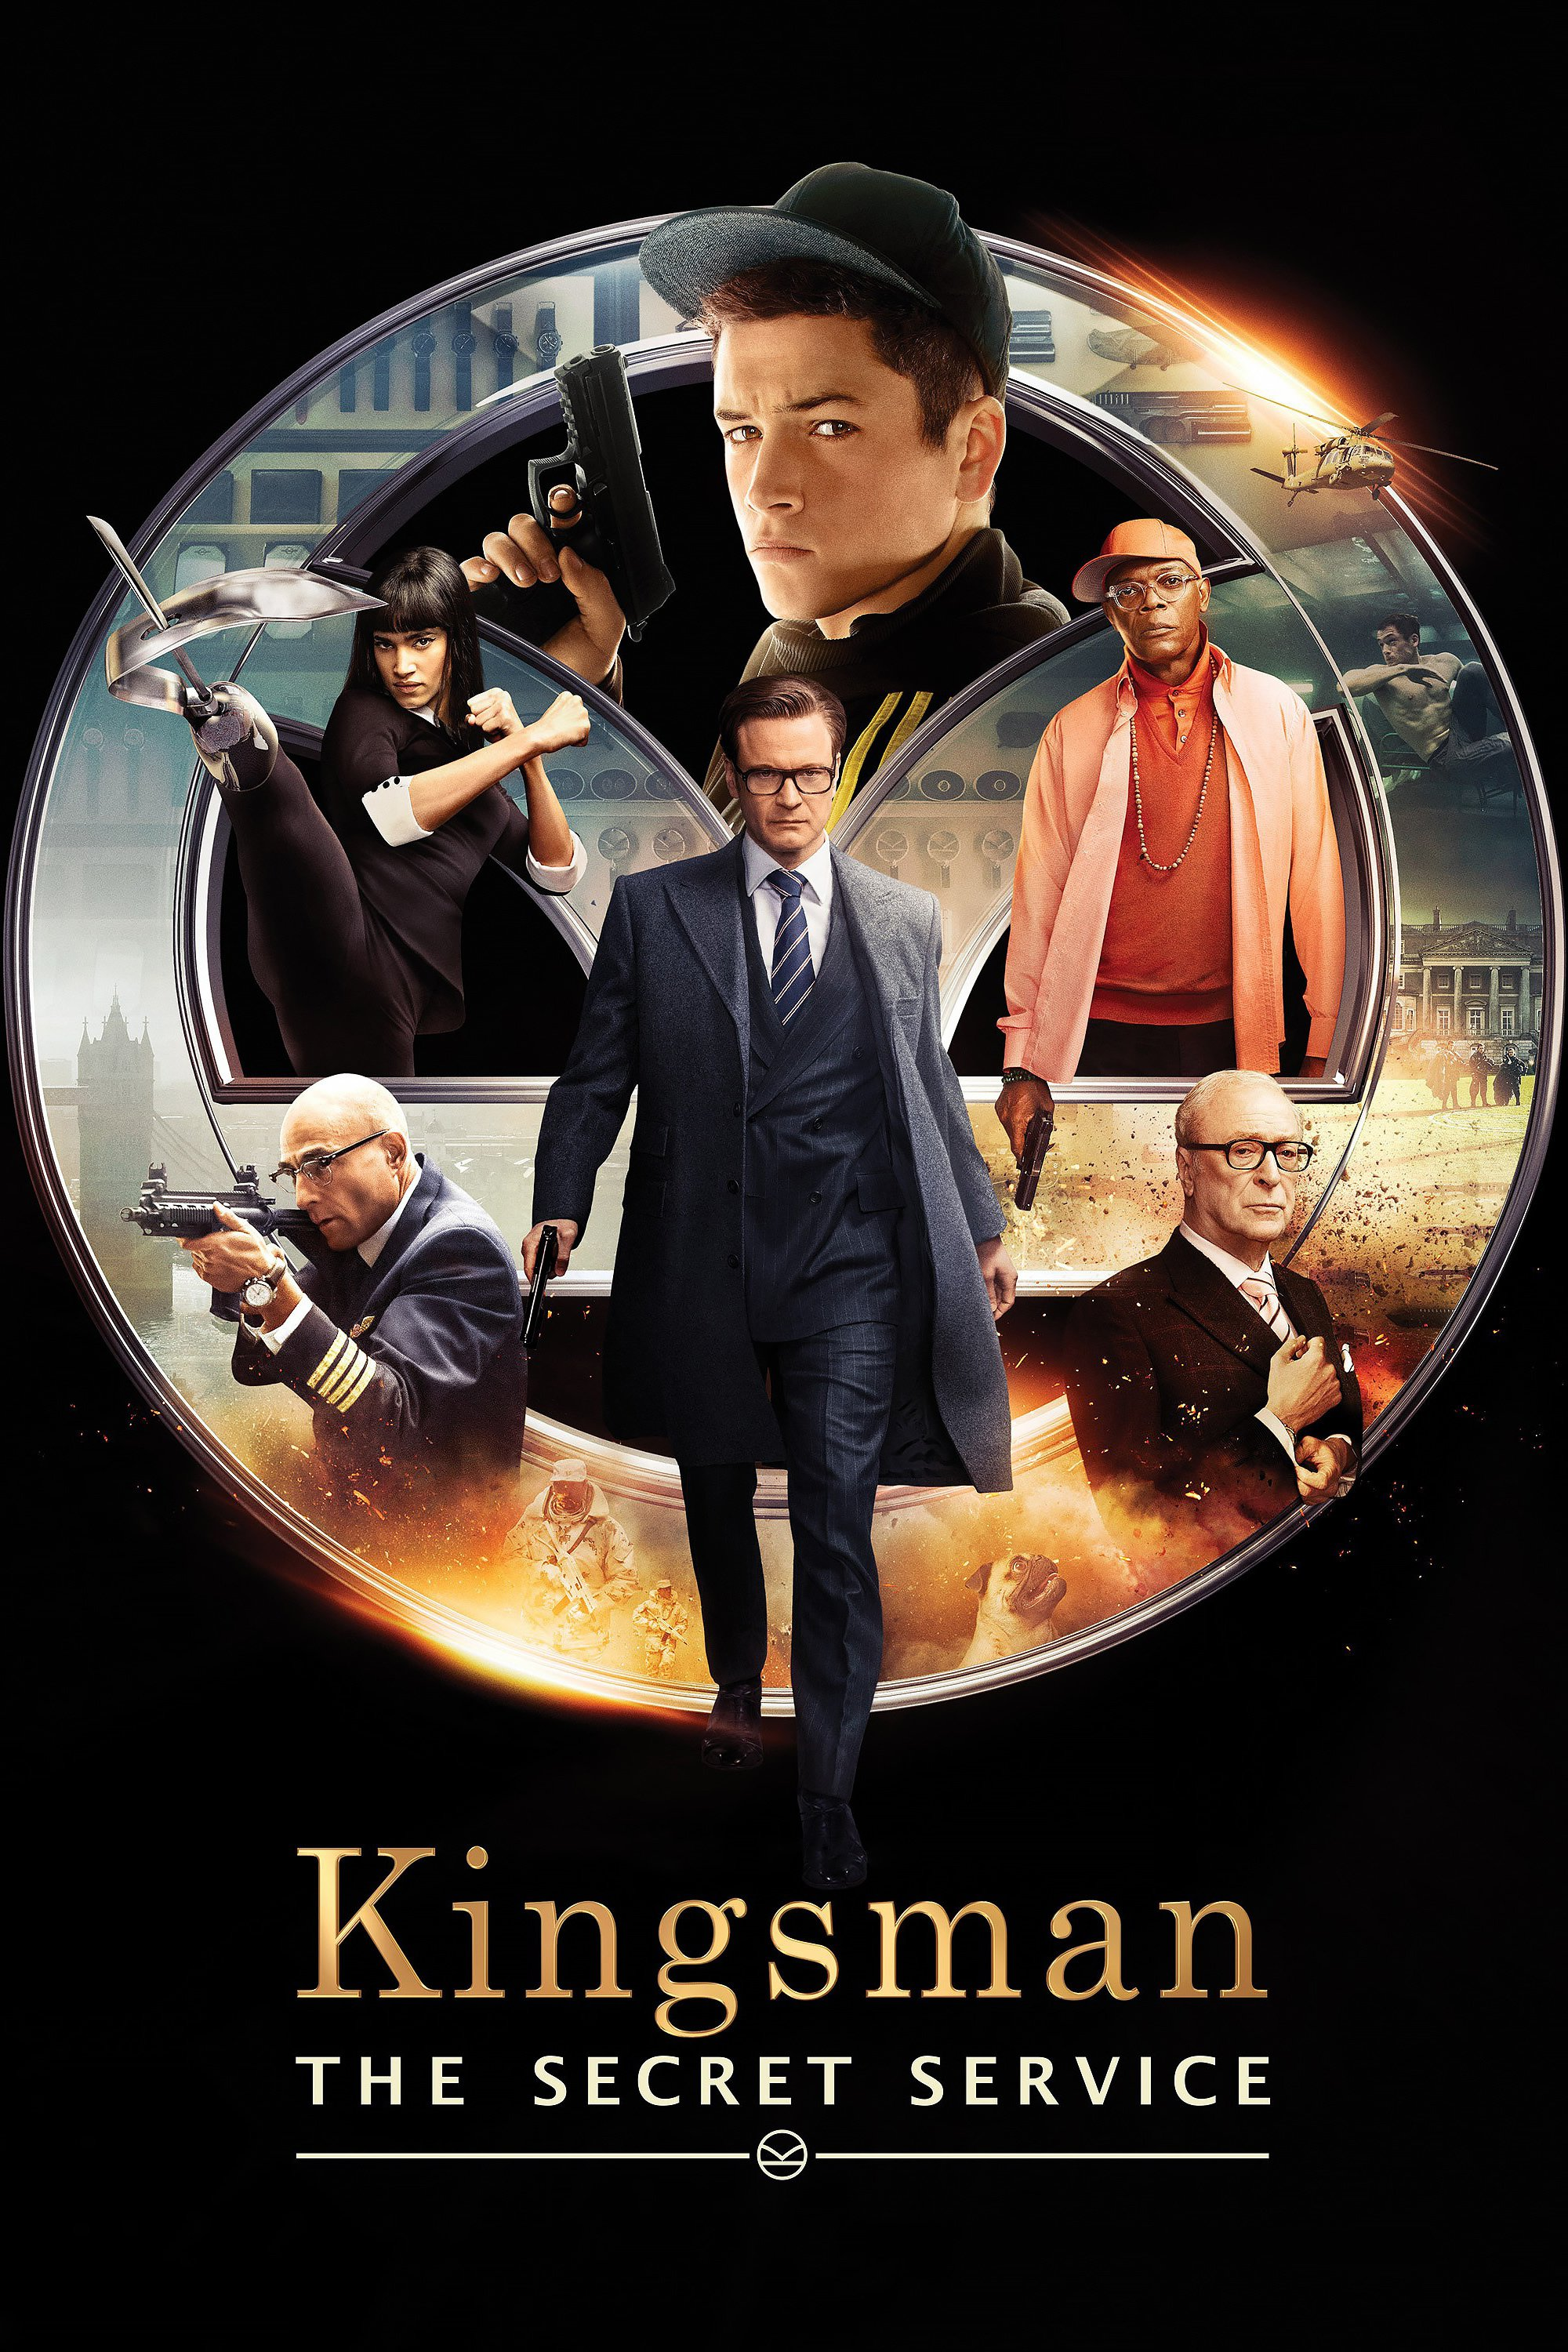 Kingsman – Very fun secret agent movie although it had some silly parts